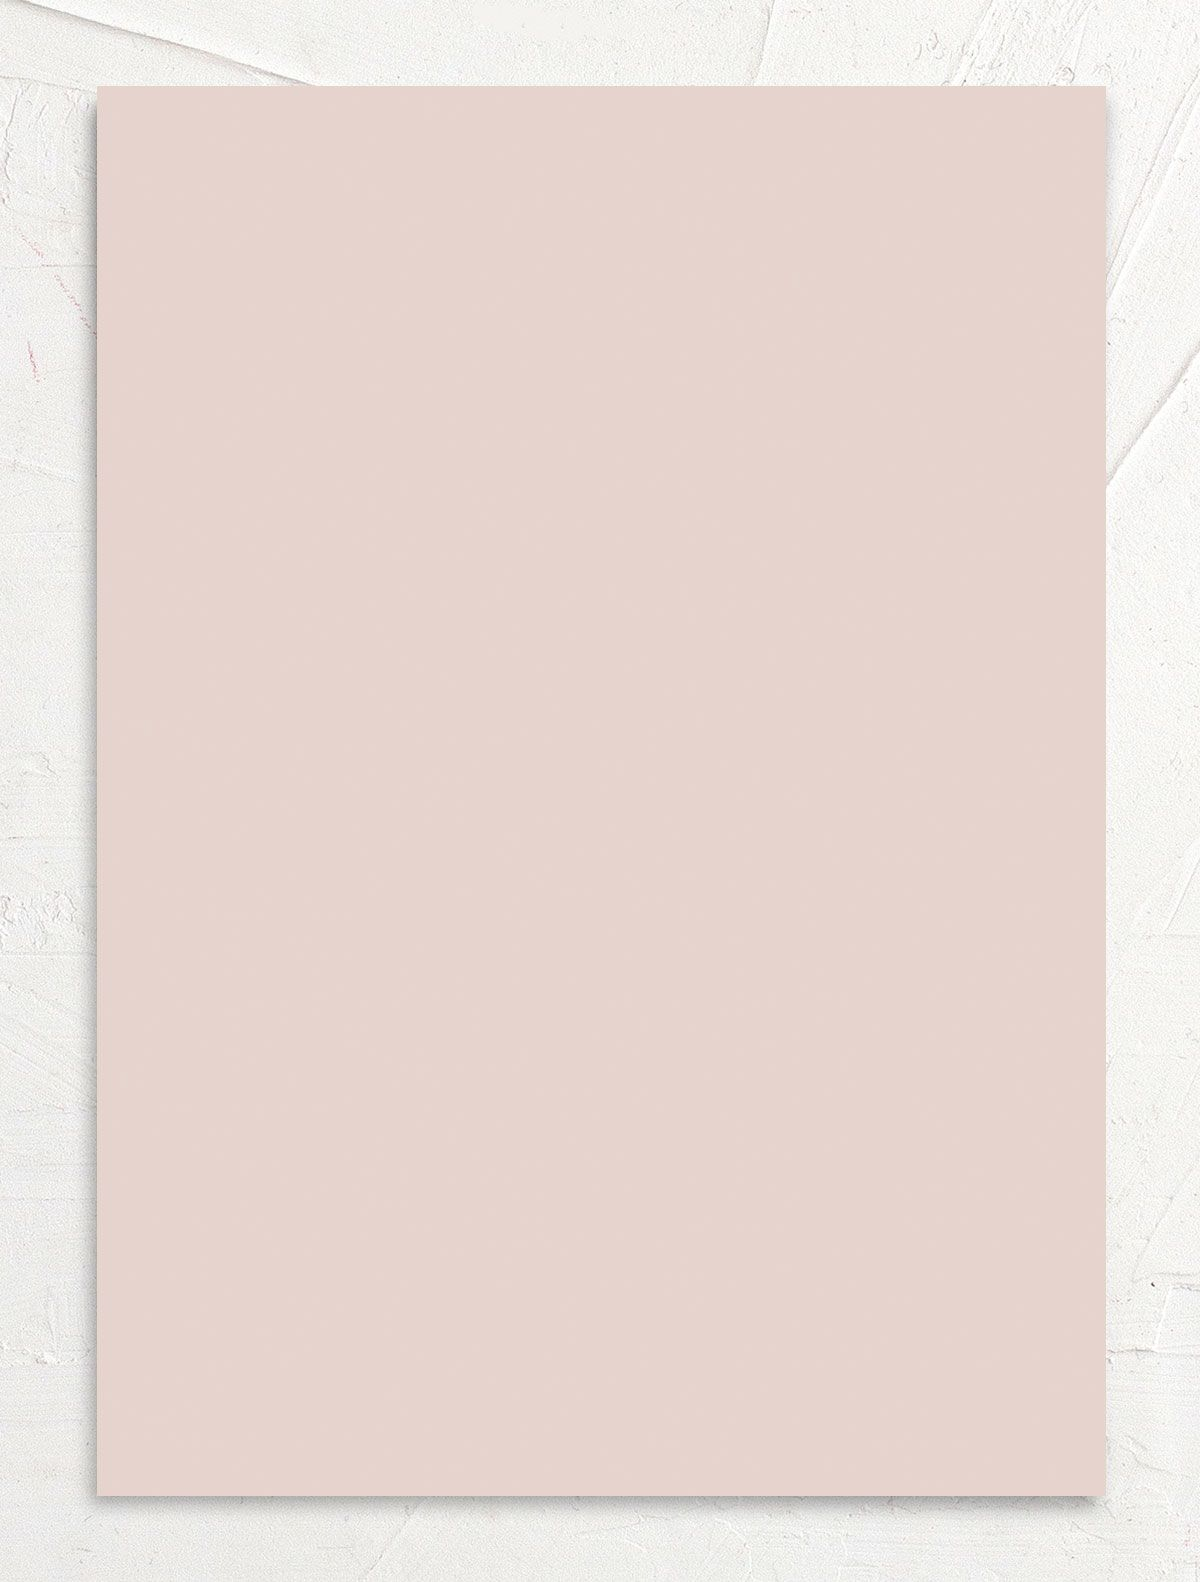 Rustic Minimal Wedding Invitation back in pink